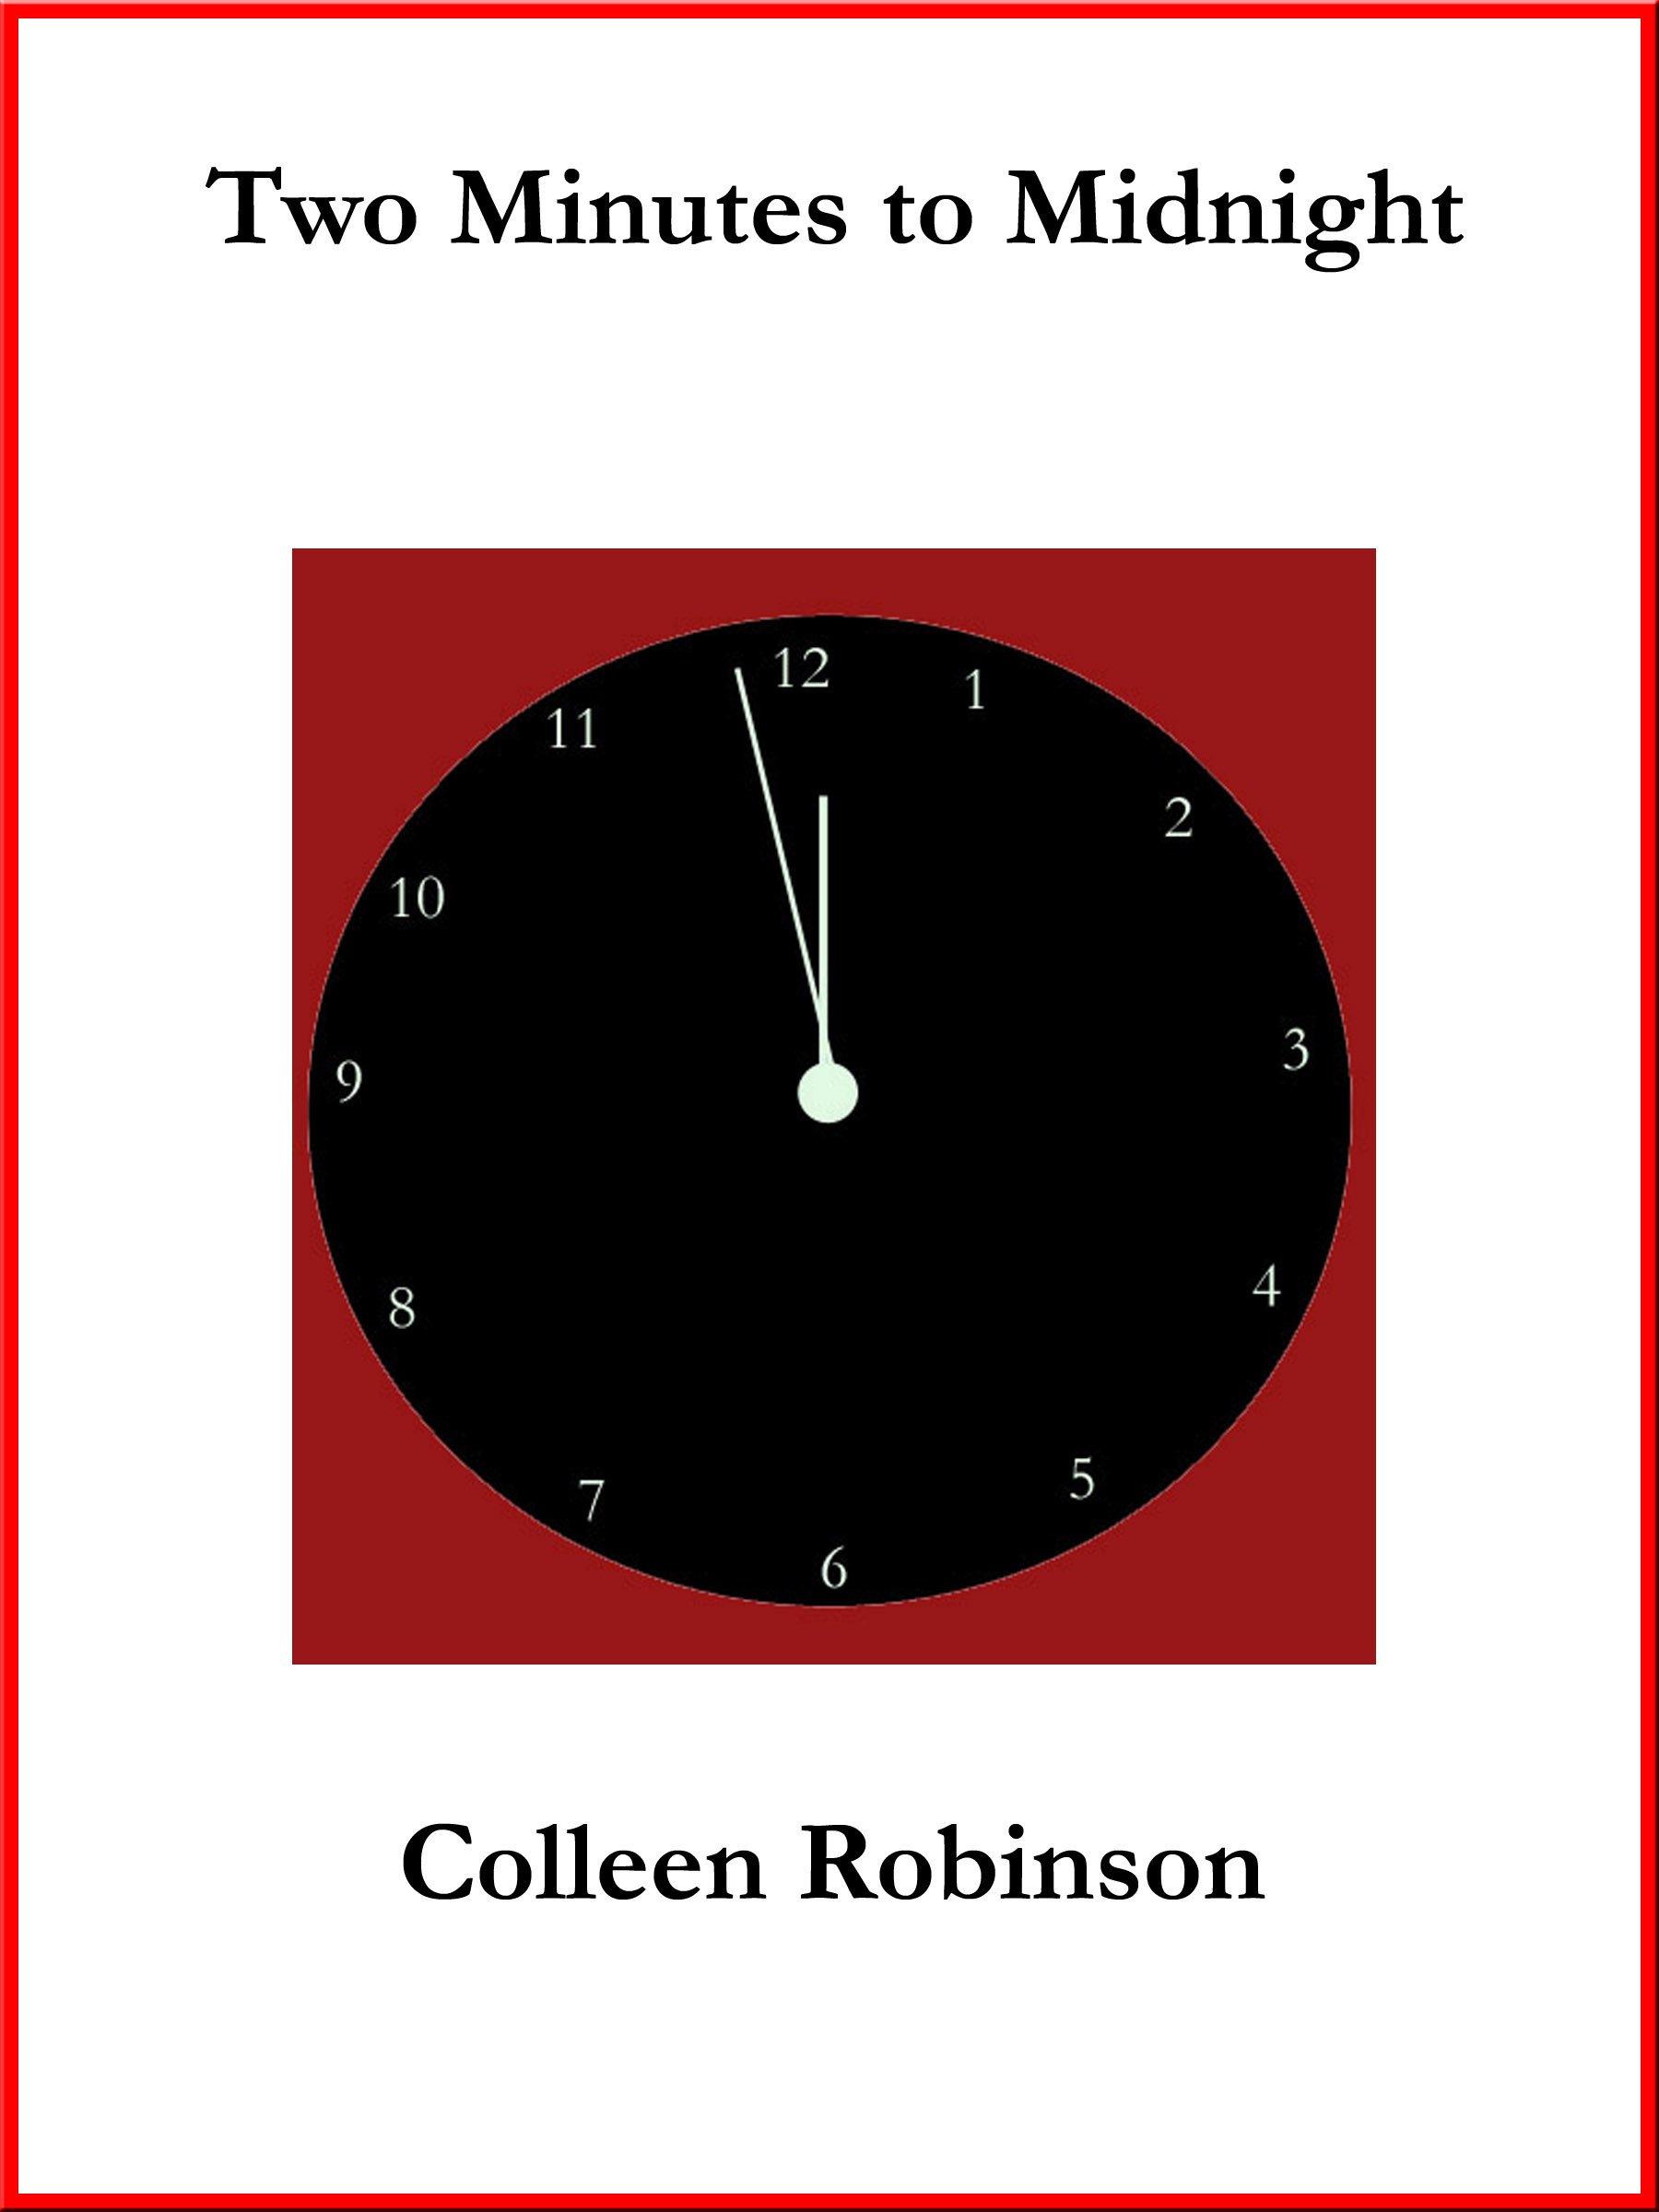 Colleen Robinson - Two Minutes to Midnight